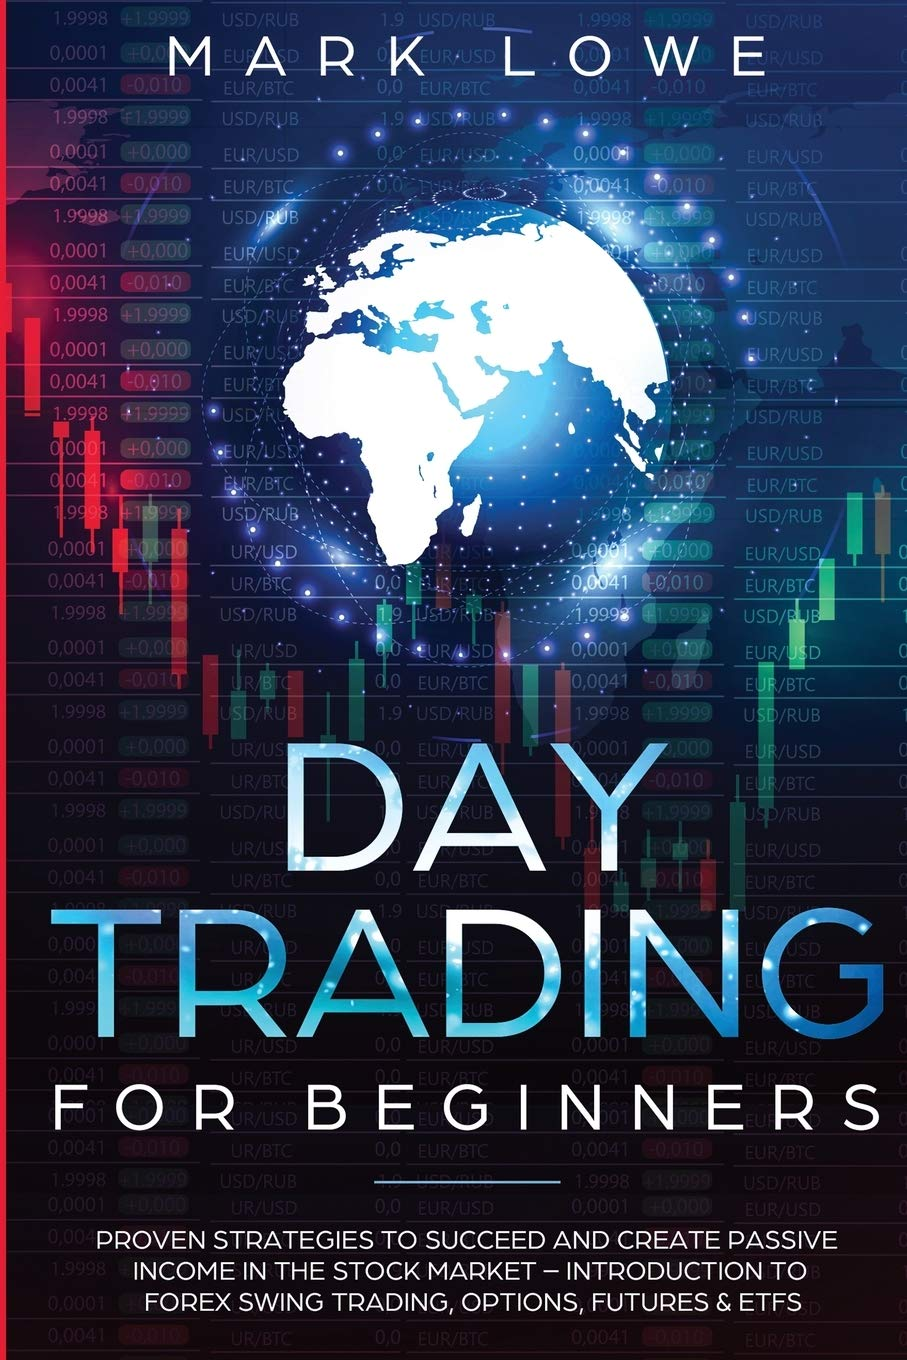 Day Trading: For Beginners - Proven Strategies to Succeed and Create Passive Income in the Stock Market - Introduction to Forex Swing Trading, ... & ETFs (Stock Market Investing for Beginners) - Tolerant Planet